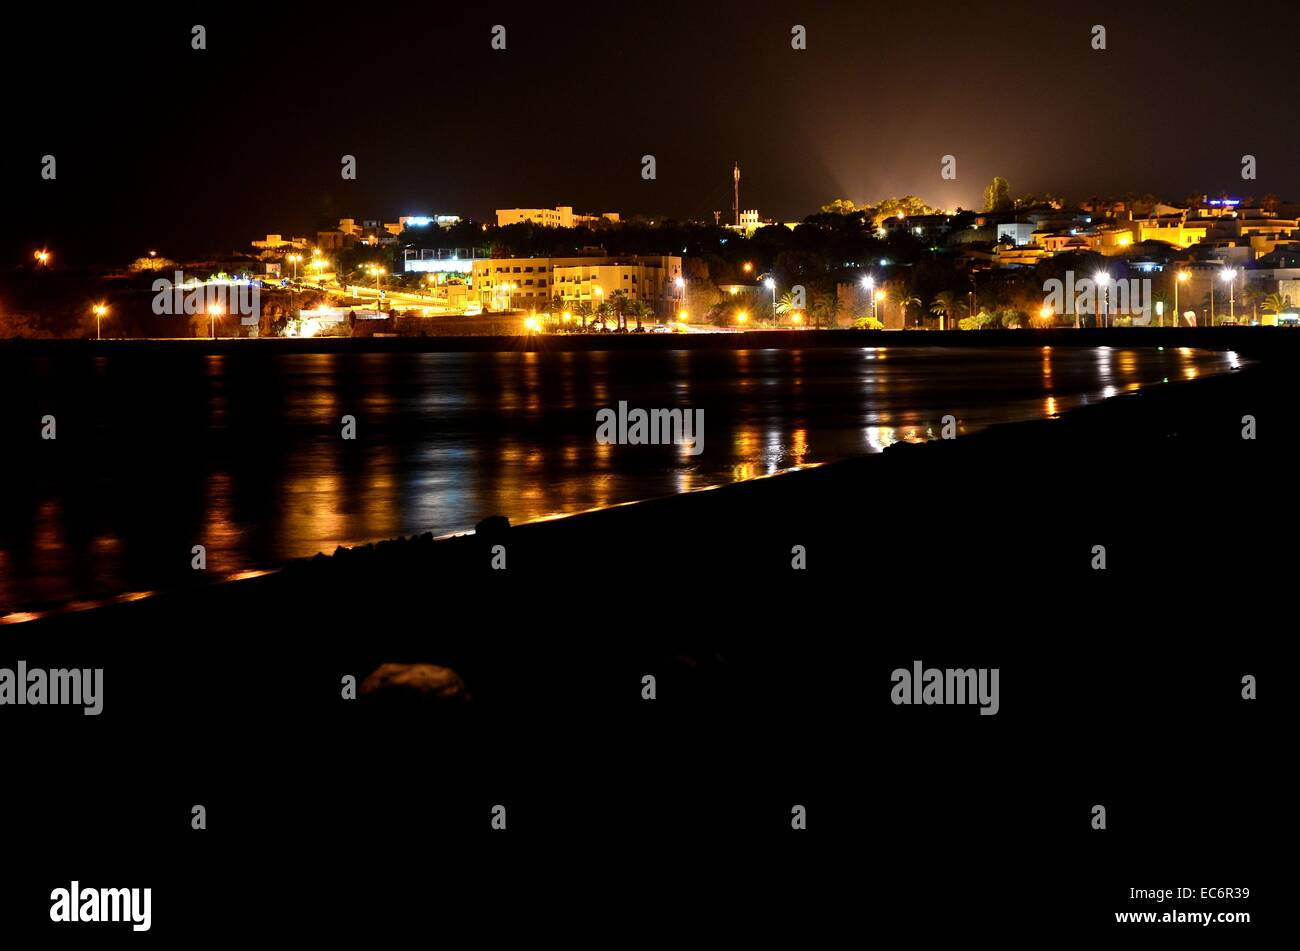 Portugal at night - Stock Image